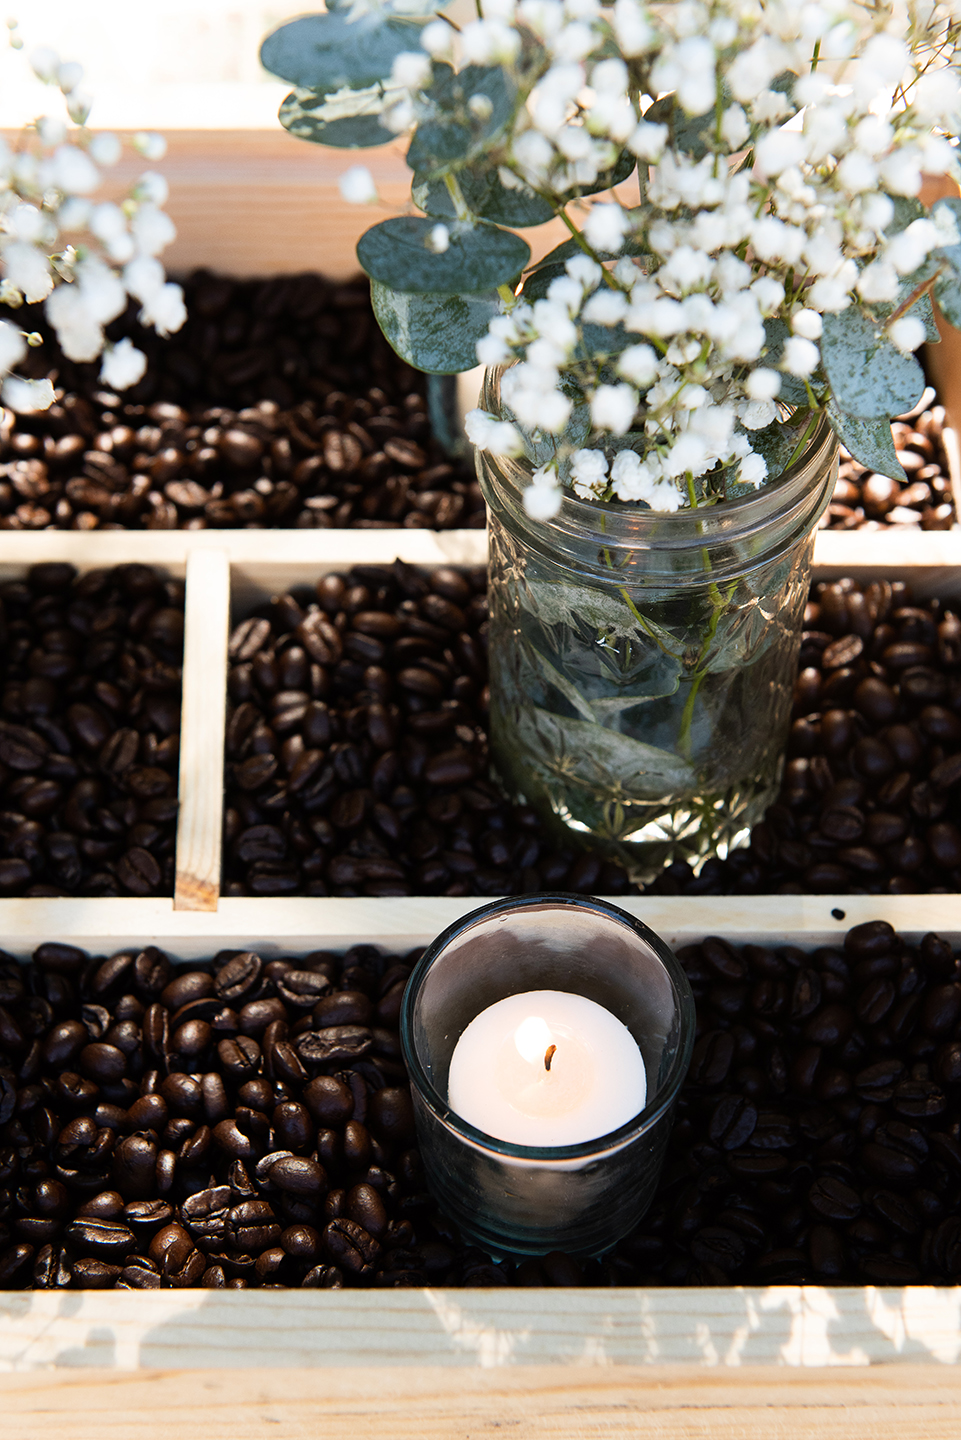 Upcycled Coffee Themed Tablescape for Zero Waste Holidays